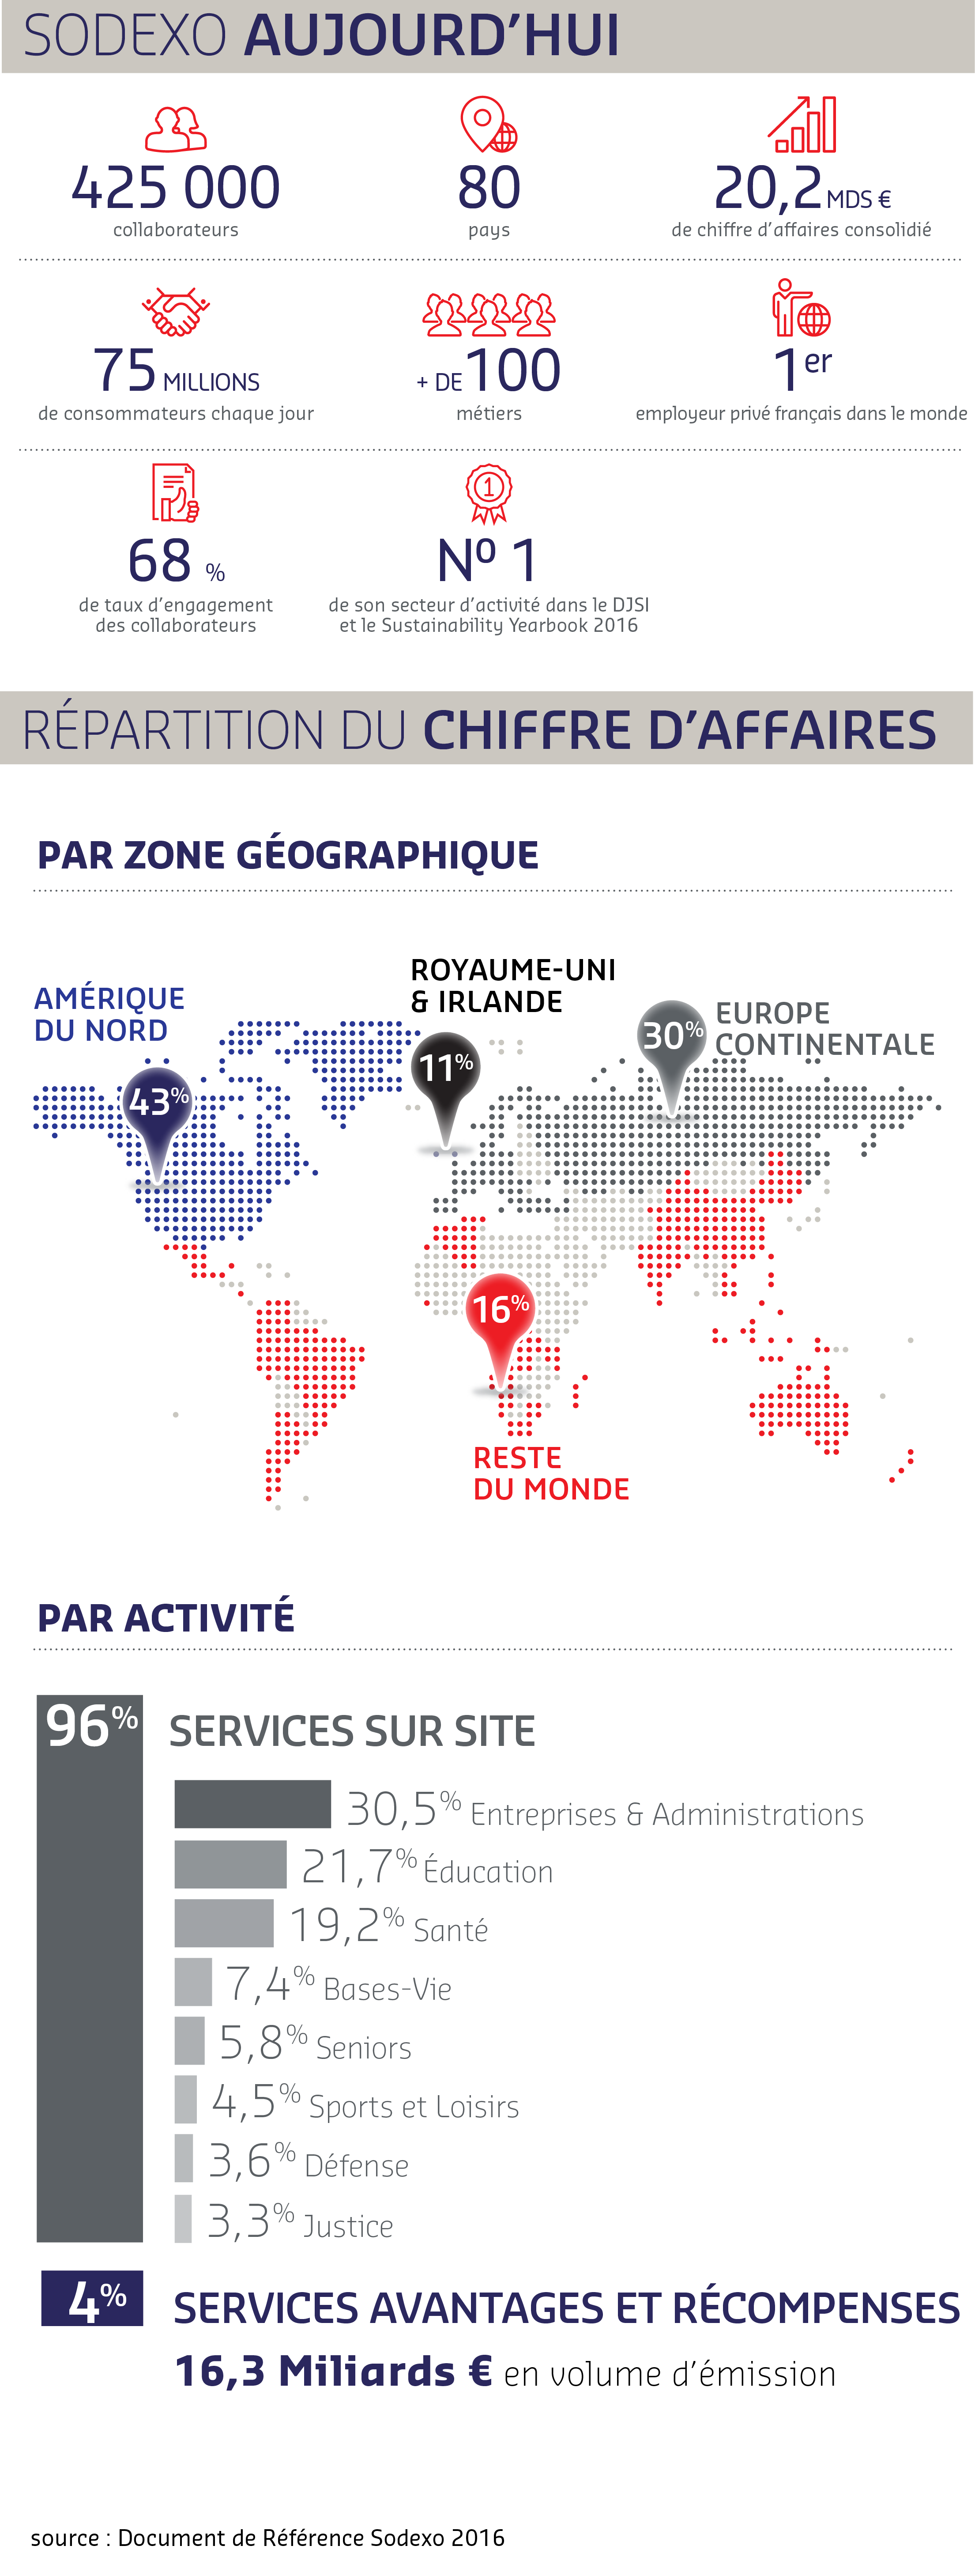 Sodexo-Group-FY2015-Key-Figures-datawall_FR.png